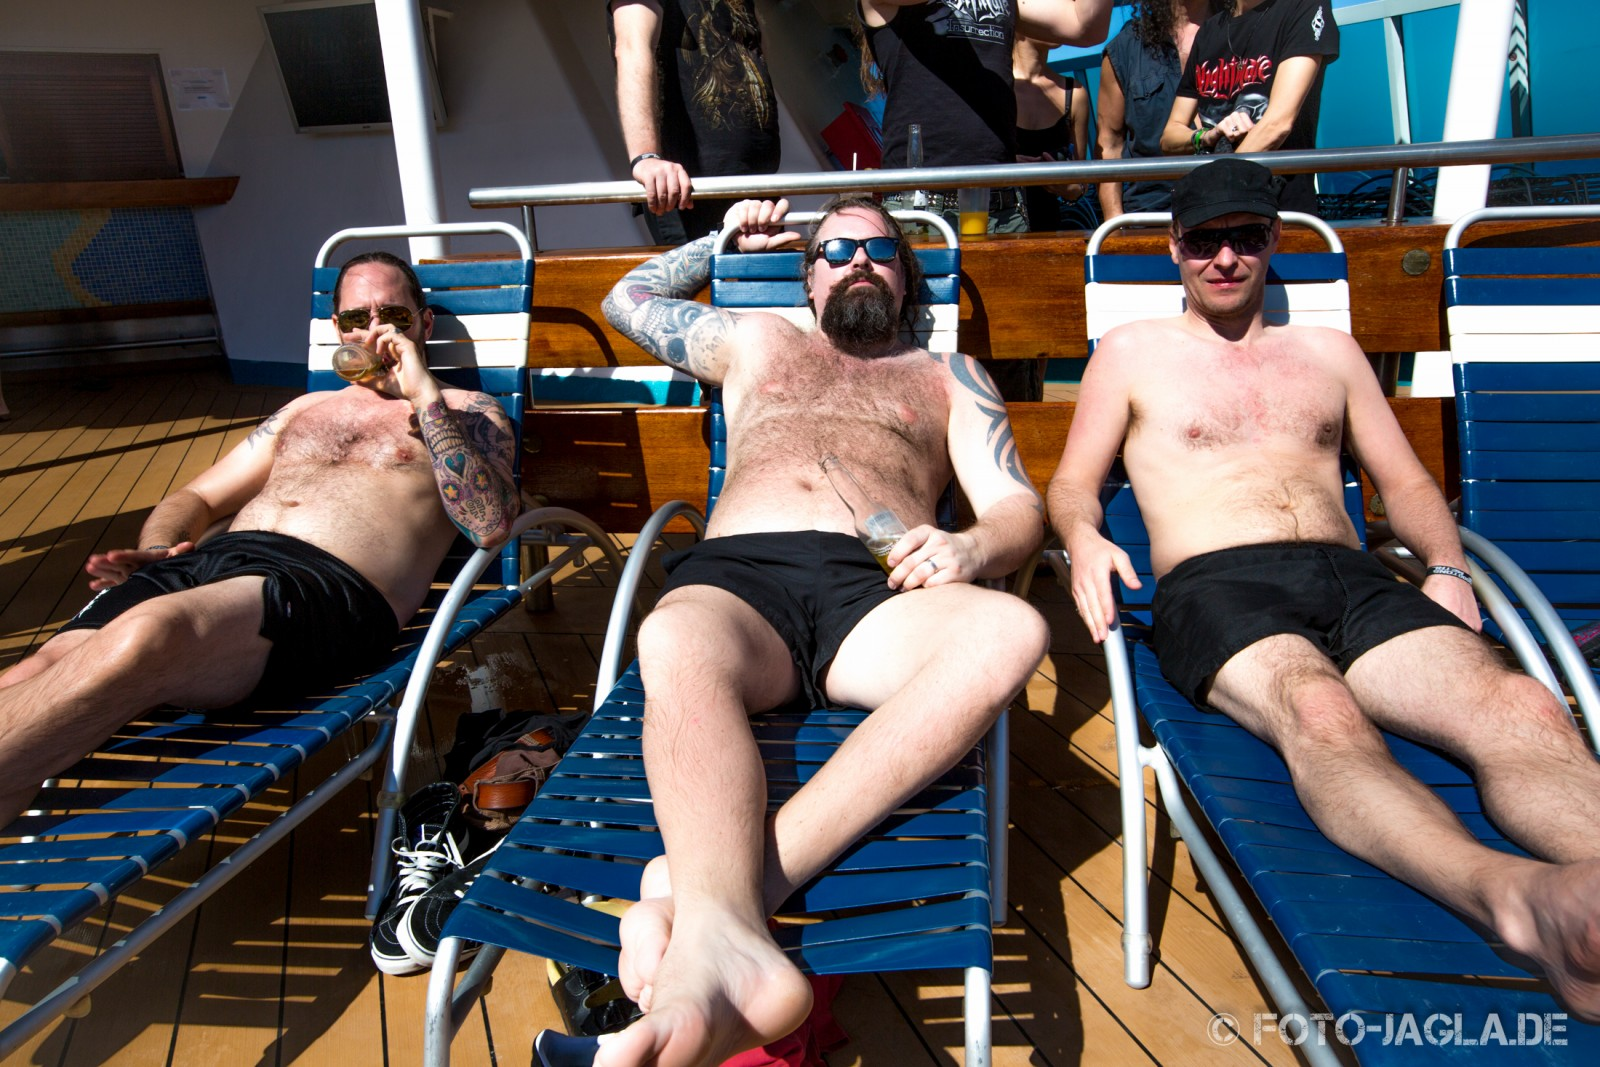 70000 Tons of Metal 2013 ::. In Flames chilling on Pooldeck ::. http://www.foto-jagla.de